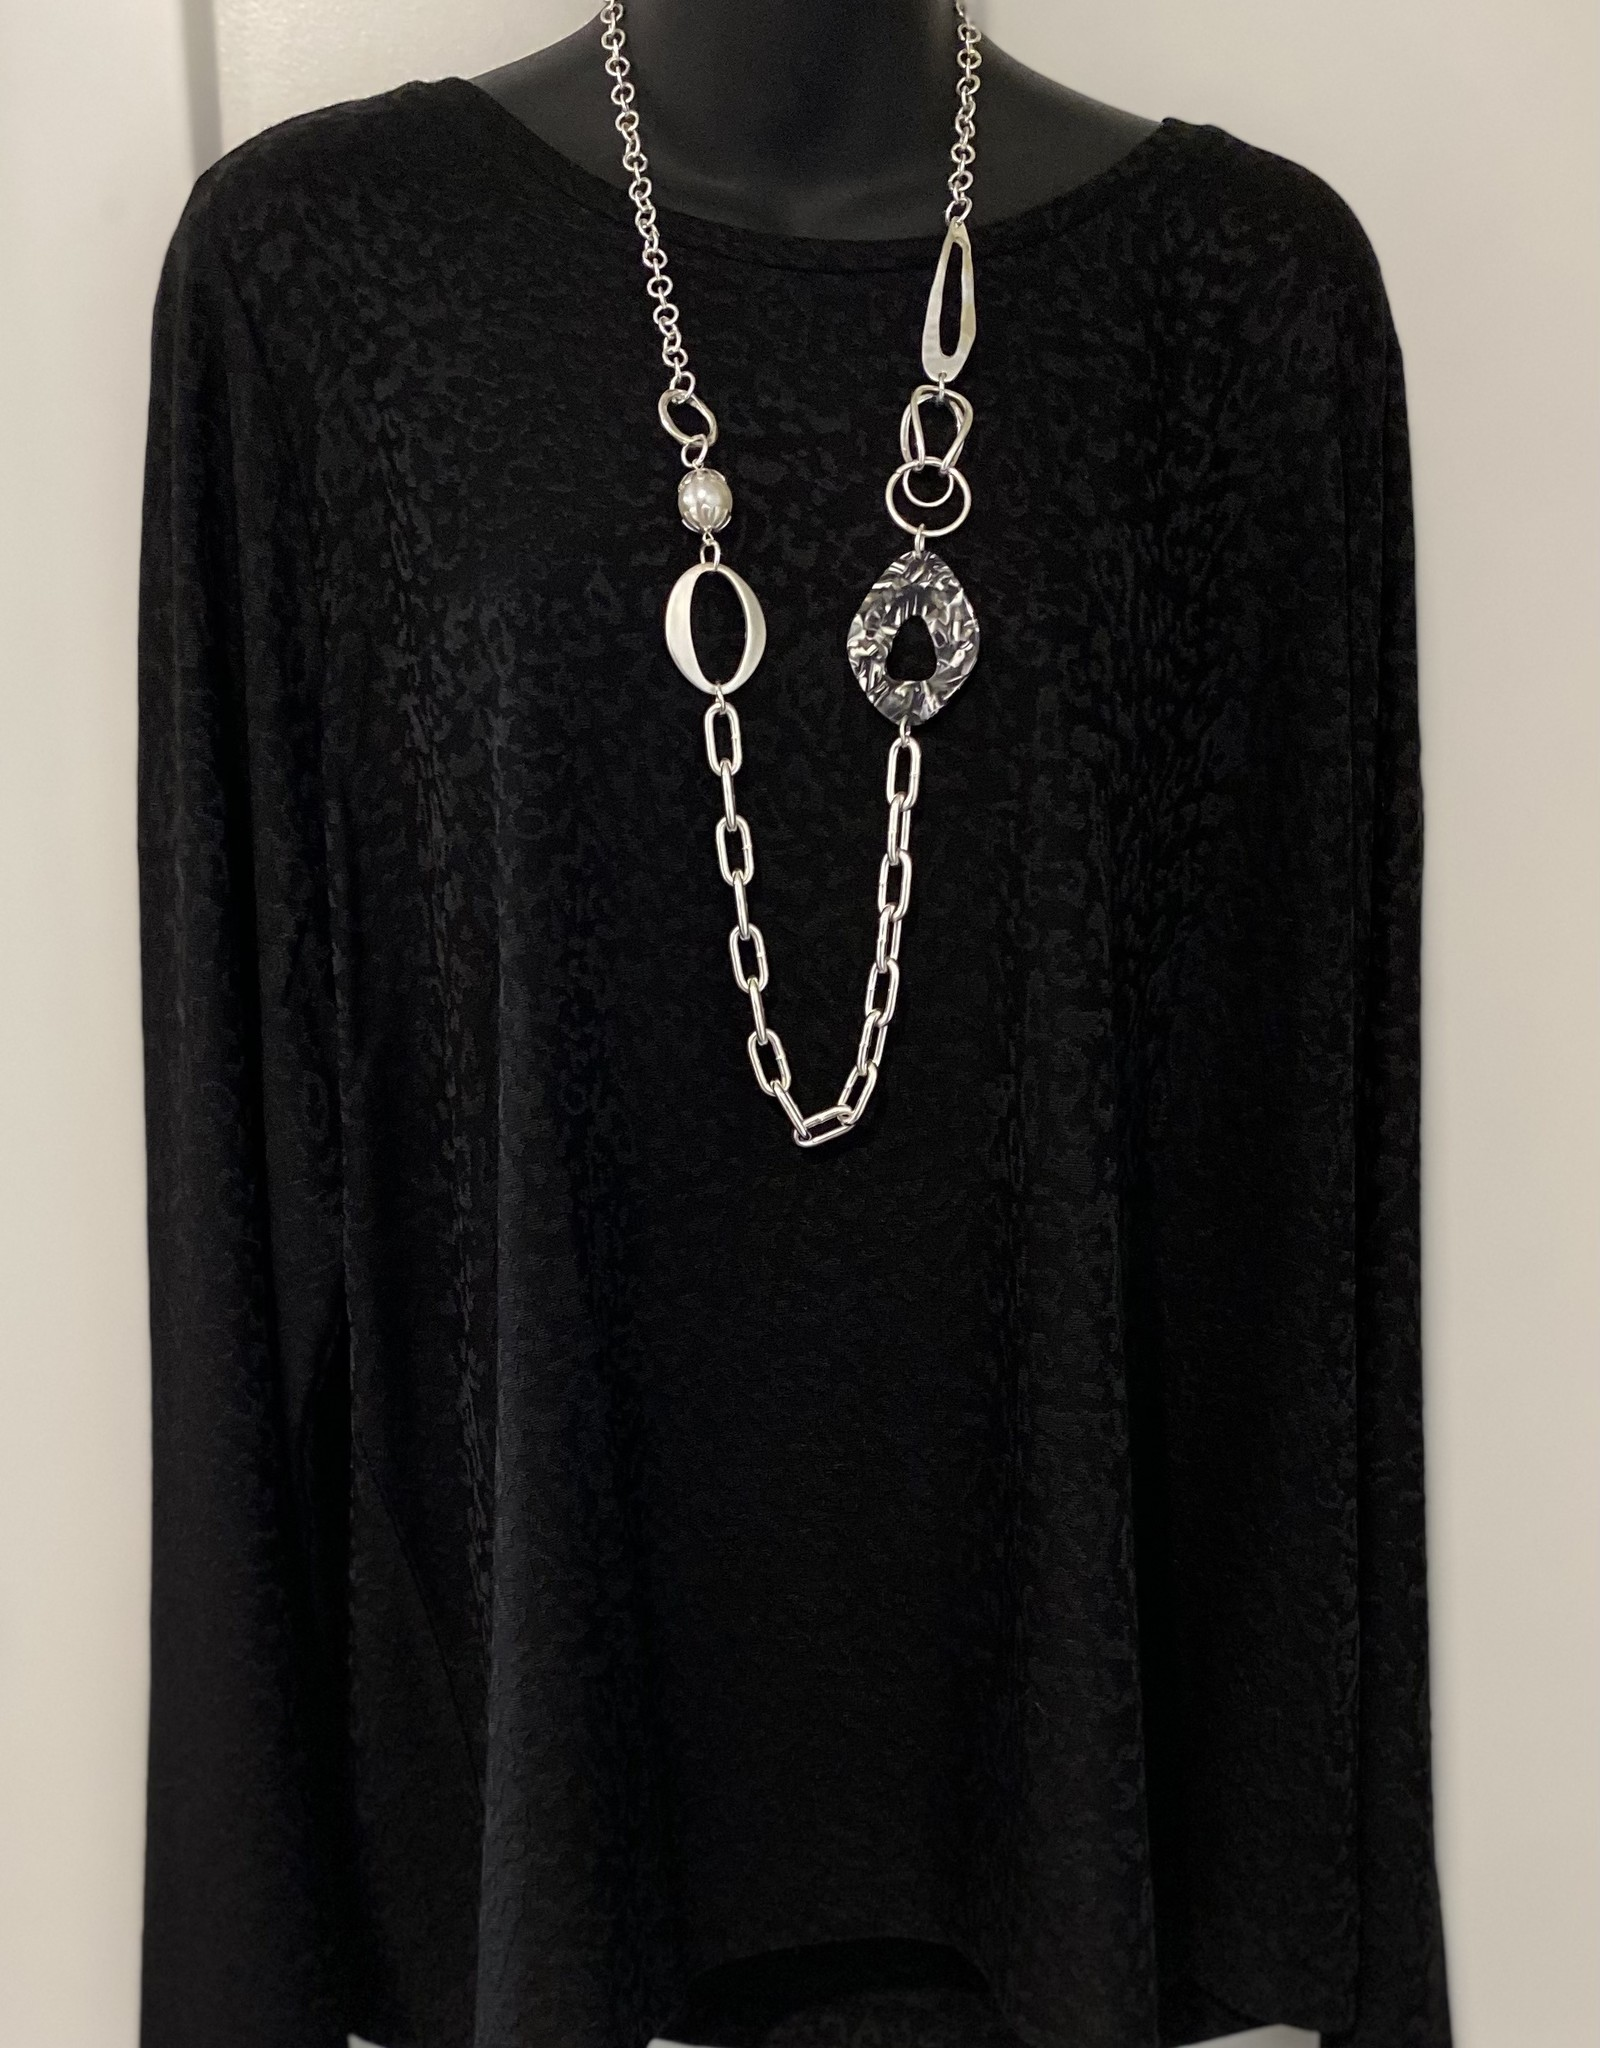 Silver Chain Style Necklace with Embellished Designs